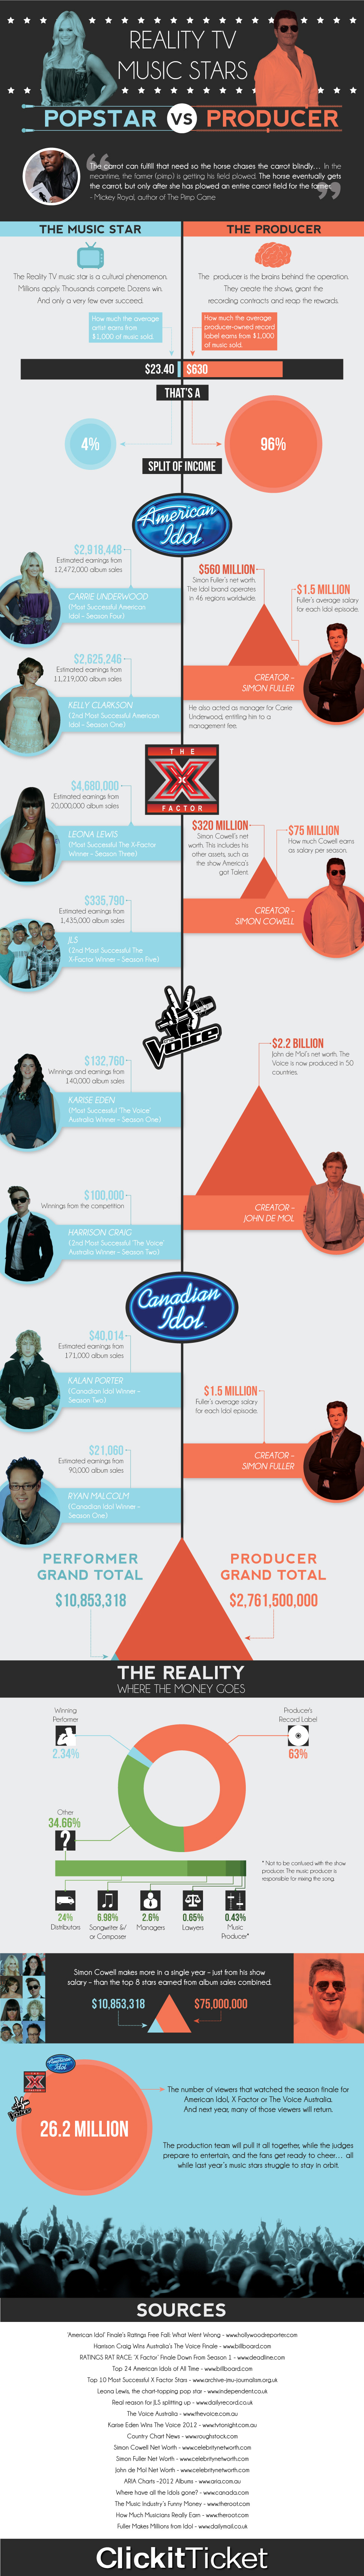 Reality TV Music Stars - Pop Star vs Producer